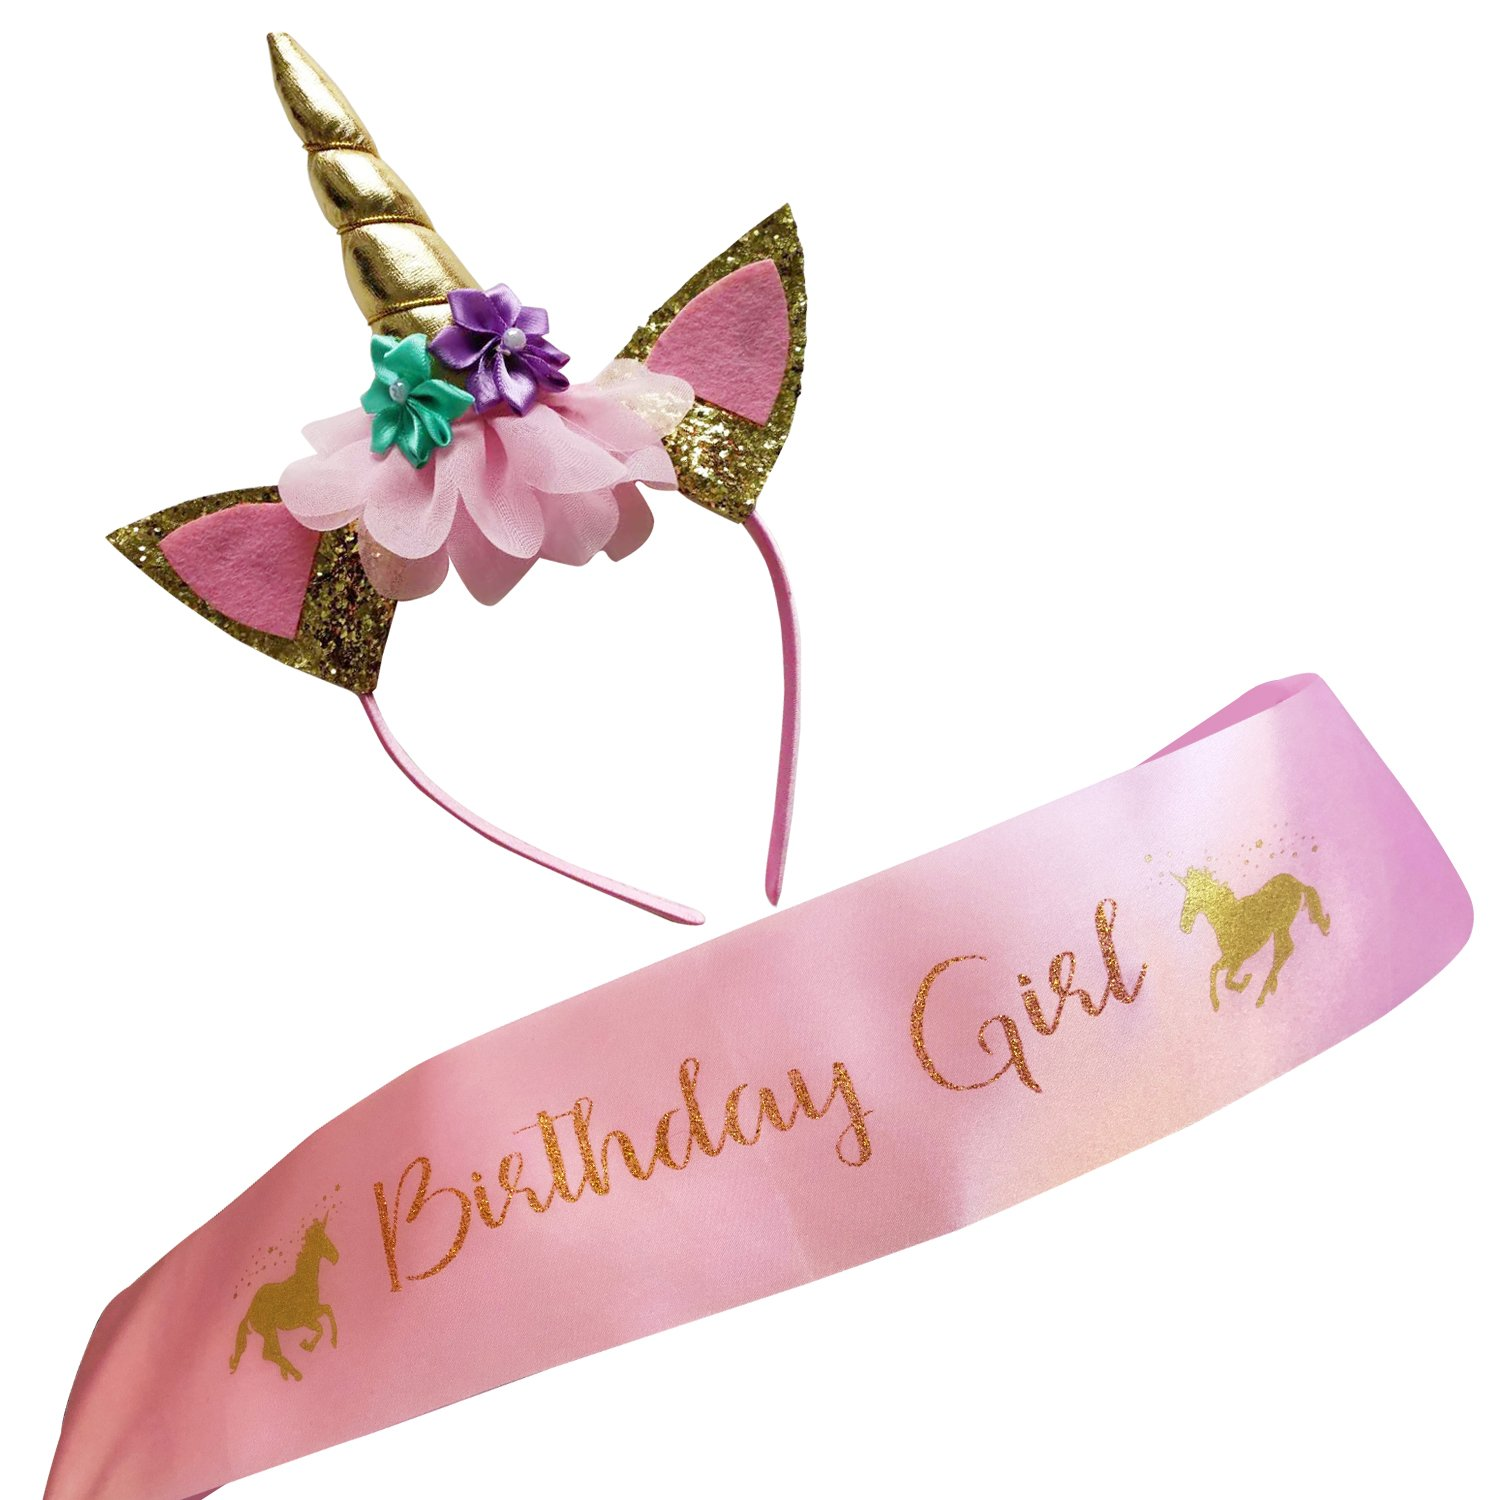 Marvs Store Unicorn Birthday Girl Set of Gold Glitter Unicorn Headband and Pink Satin Sash for Girls, Happy Birthday Unicorn Party Supplies, Favors and Decorations - 2018 New. by Marvs Store